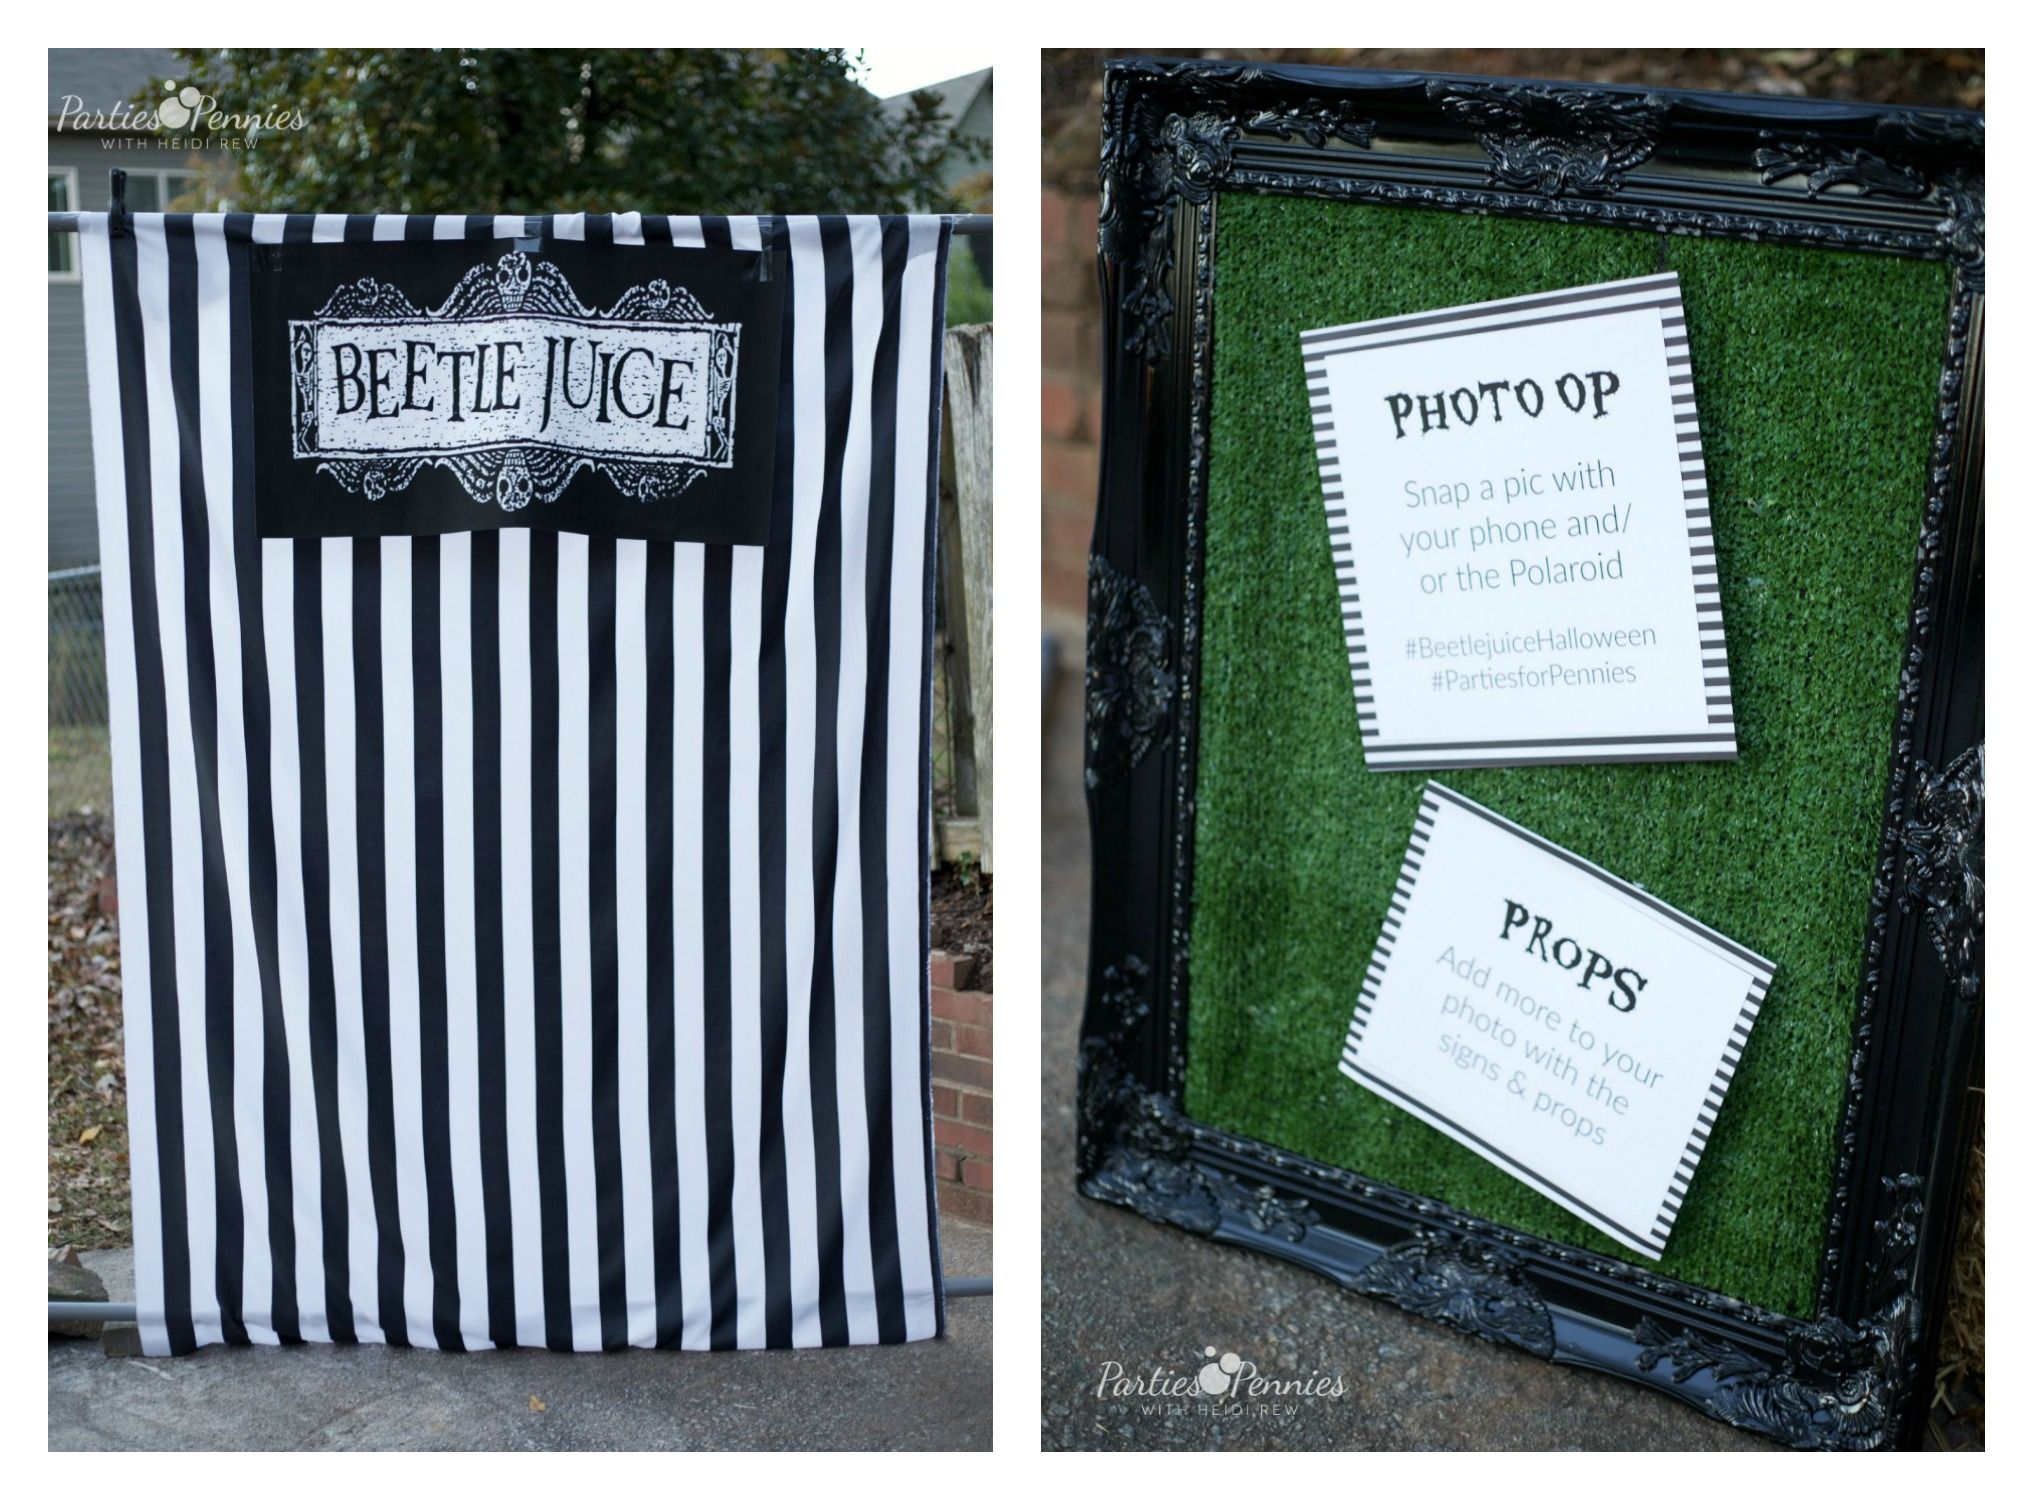 Beetlejuice Halloween Party (With images) Beetlejuice